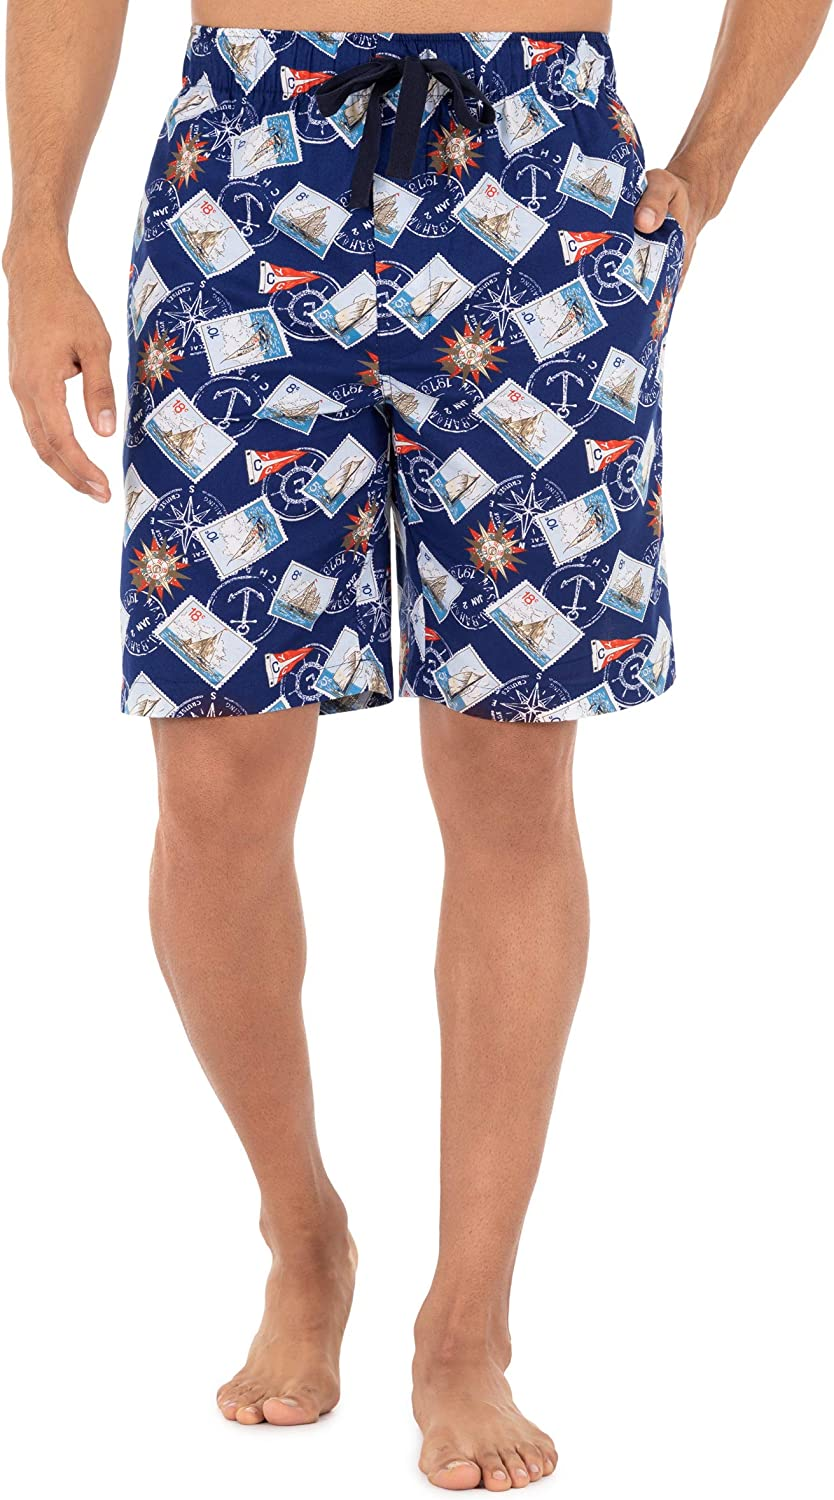 Chaps Men's Relaxed Fit Cotton Printed Sleep Short